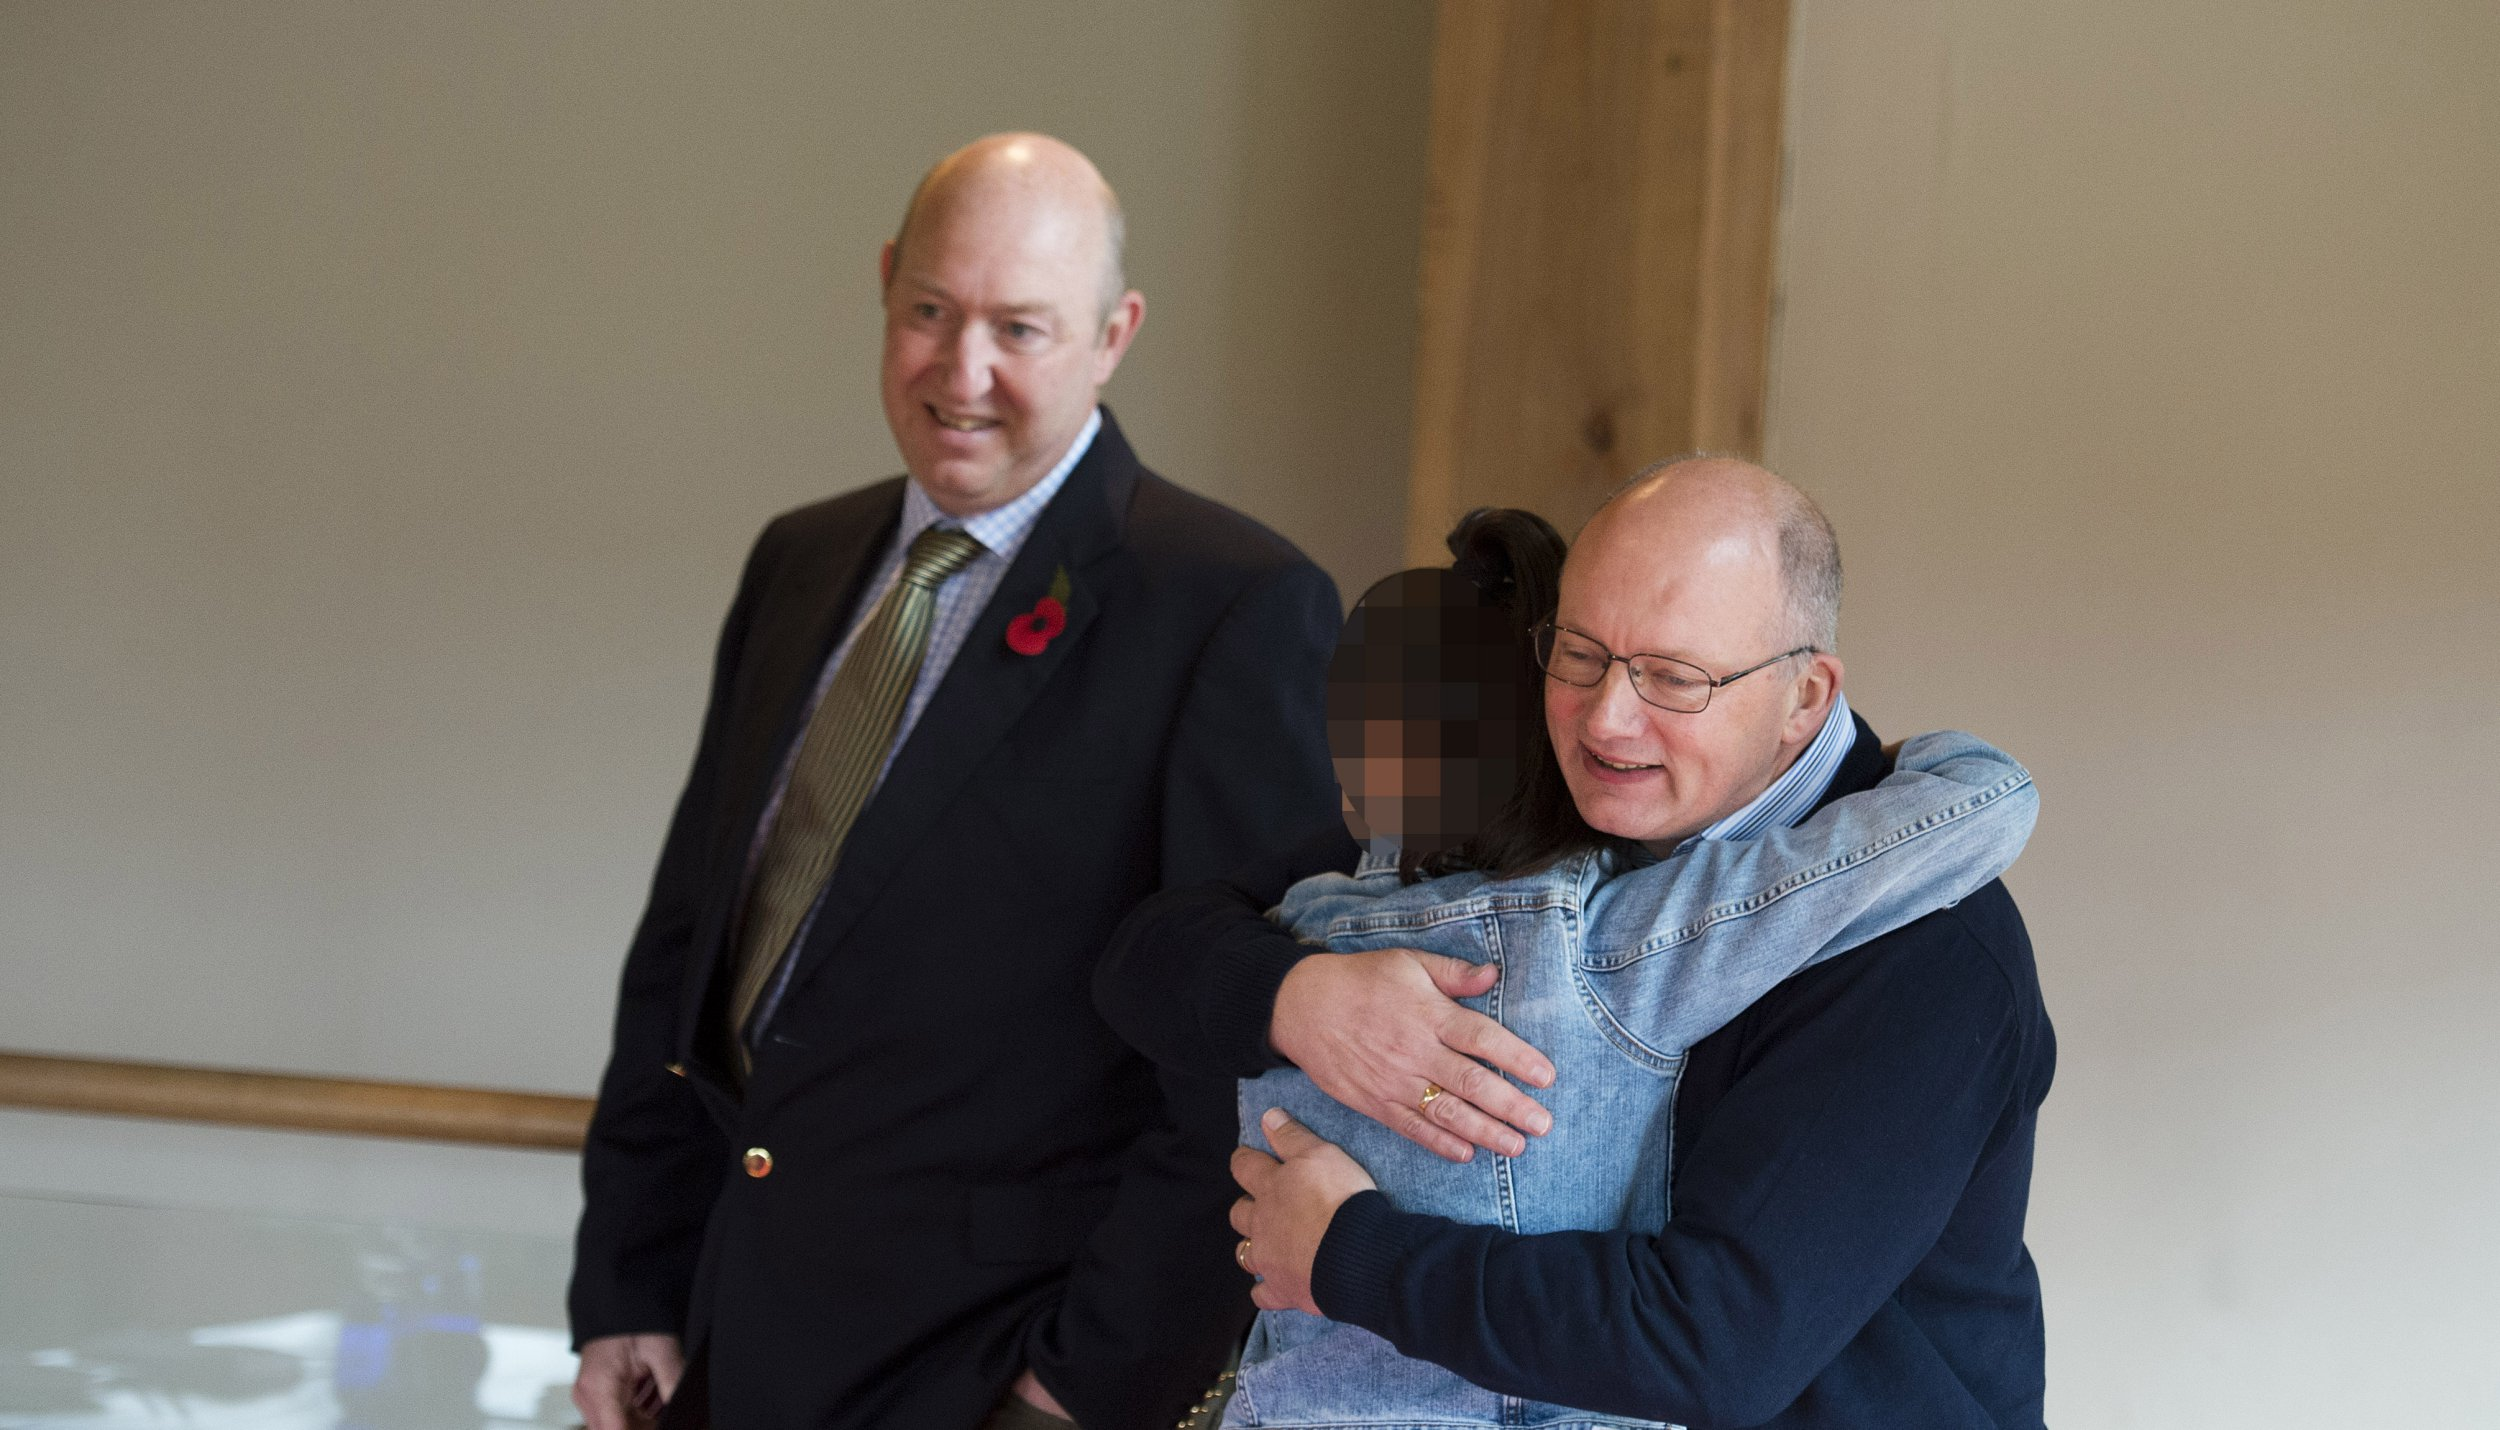 Online usage fee ?75 per image. Print fee ?150. Embargoed until 12pm on 10.11.18 Victim of Paedophile Craig Sweeney and her mother (who cannot be identified) pictured meeting the two police officers who rescued her as a 3 year old. Marcus Beresford-Smith (jacket) and Richard Moorhouse rescued the victim and arrested Sweeney after a high speed car chase in 2006.